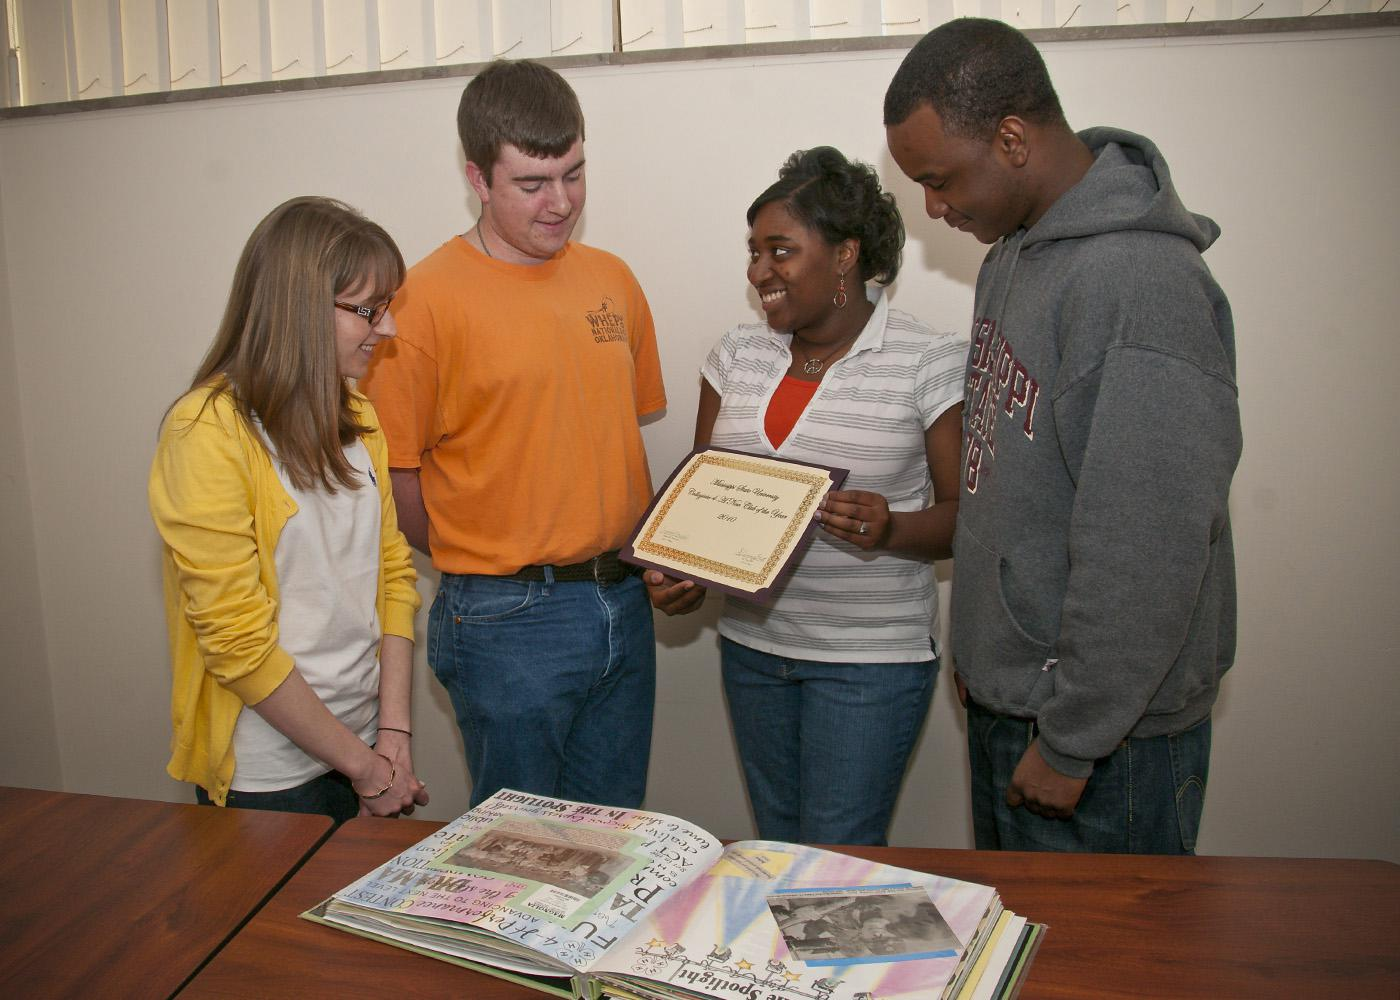 Looking over their winning application for national recognition are Mississippi State University Collegiate 4-H'ers, from left, Savannah Duckworth of New Albany, Stuart Wright of Columbus, Brittany Reed of Greenwood and Shad Benn of Hattiesburg. (Photo by Scott Corey)